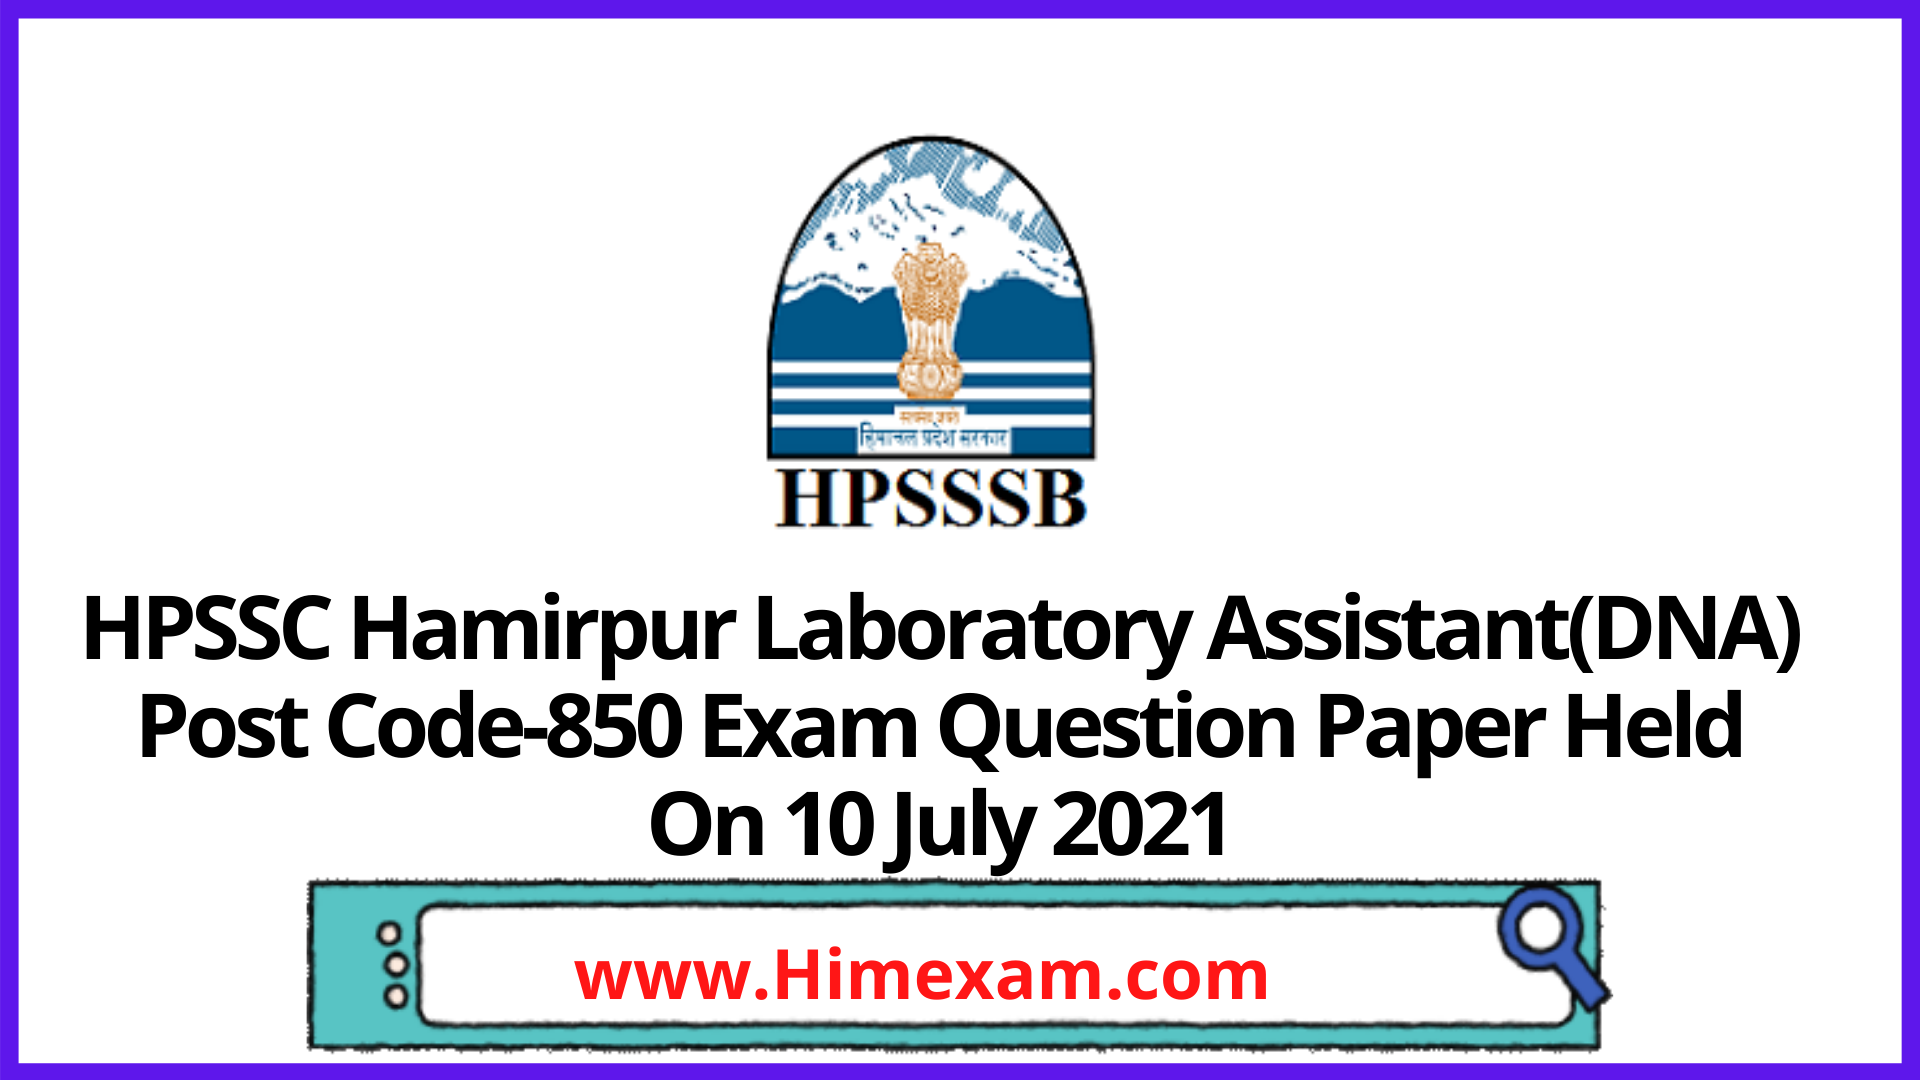 HPSSC Hamirpur Laboratory Assistant(DNA) Post Code-850 Exam Question Paper Held On 10 July 2021